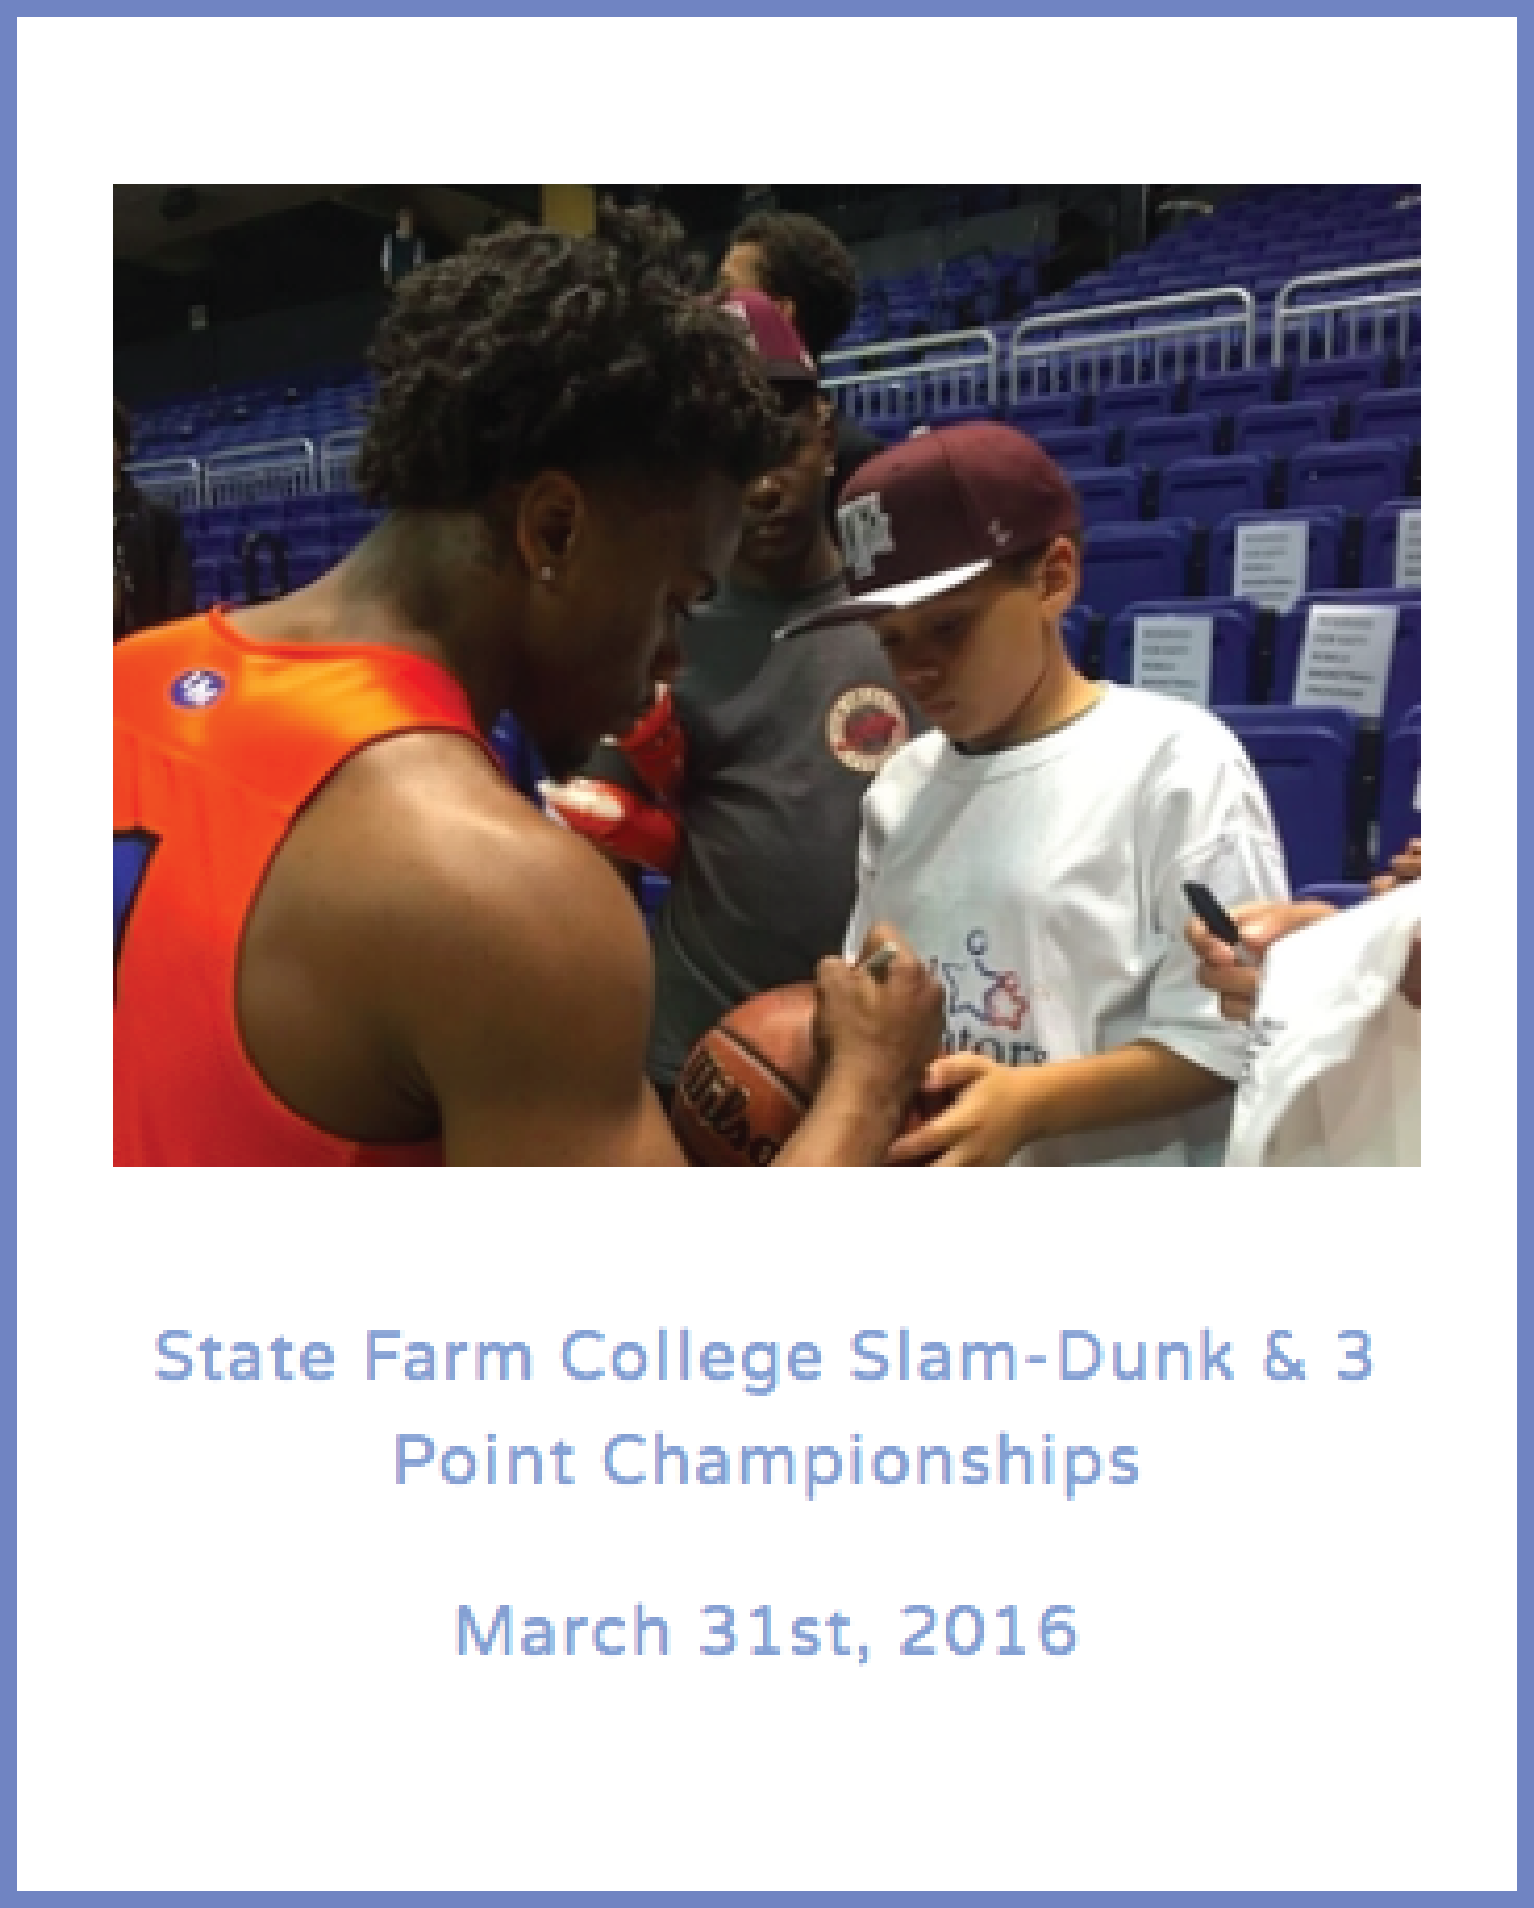 State Farm College Slam-Dunk & 3 Point Championships  March 31st, 2016